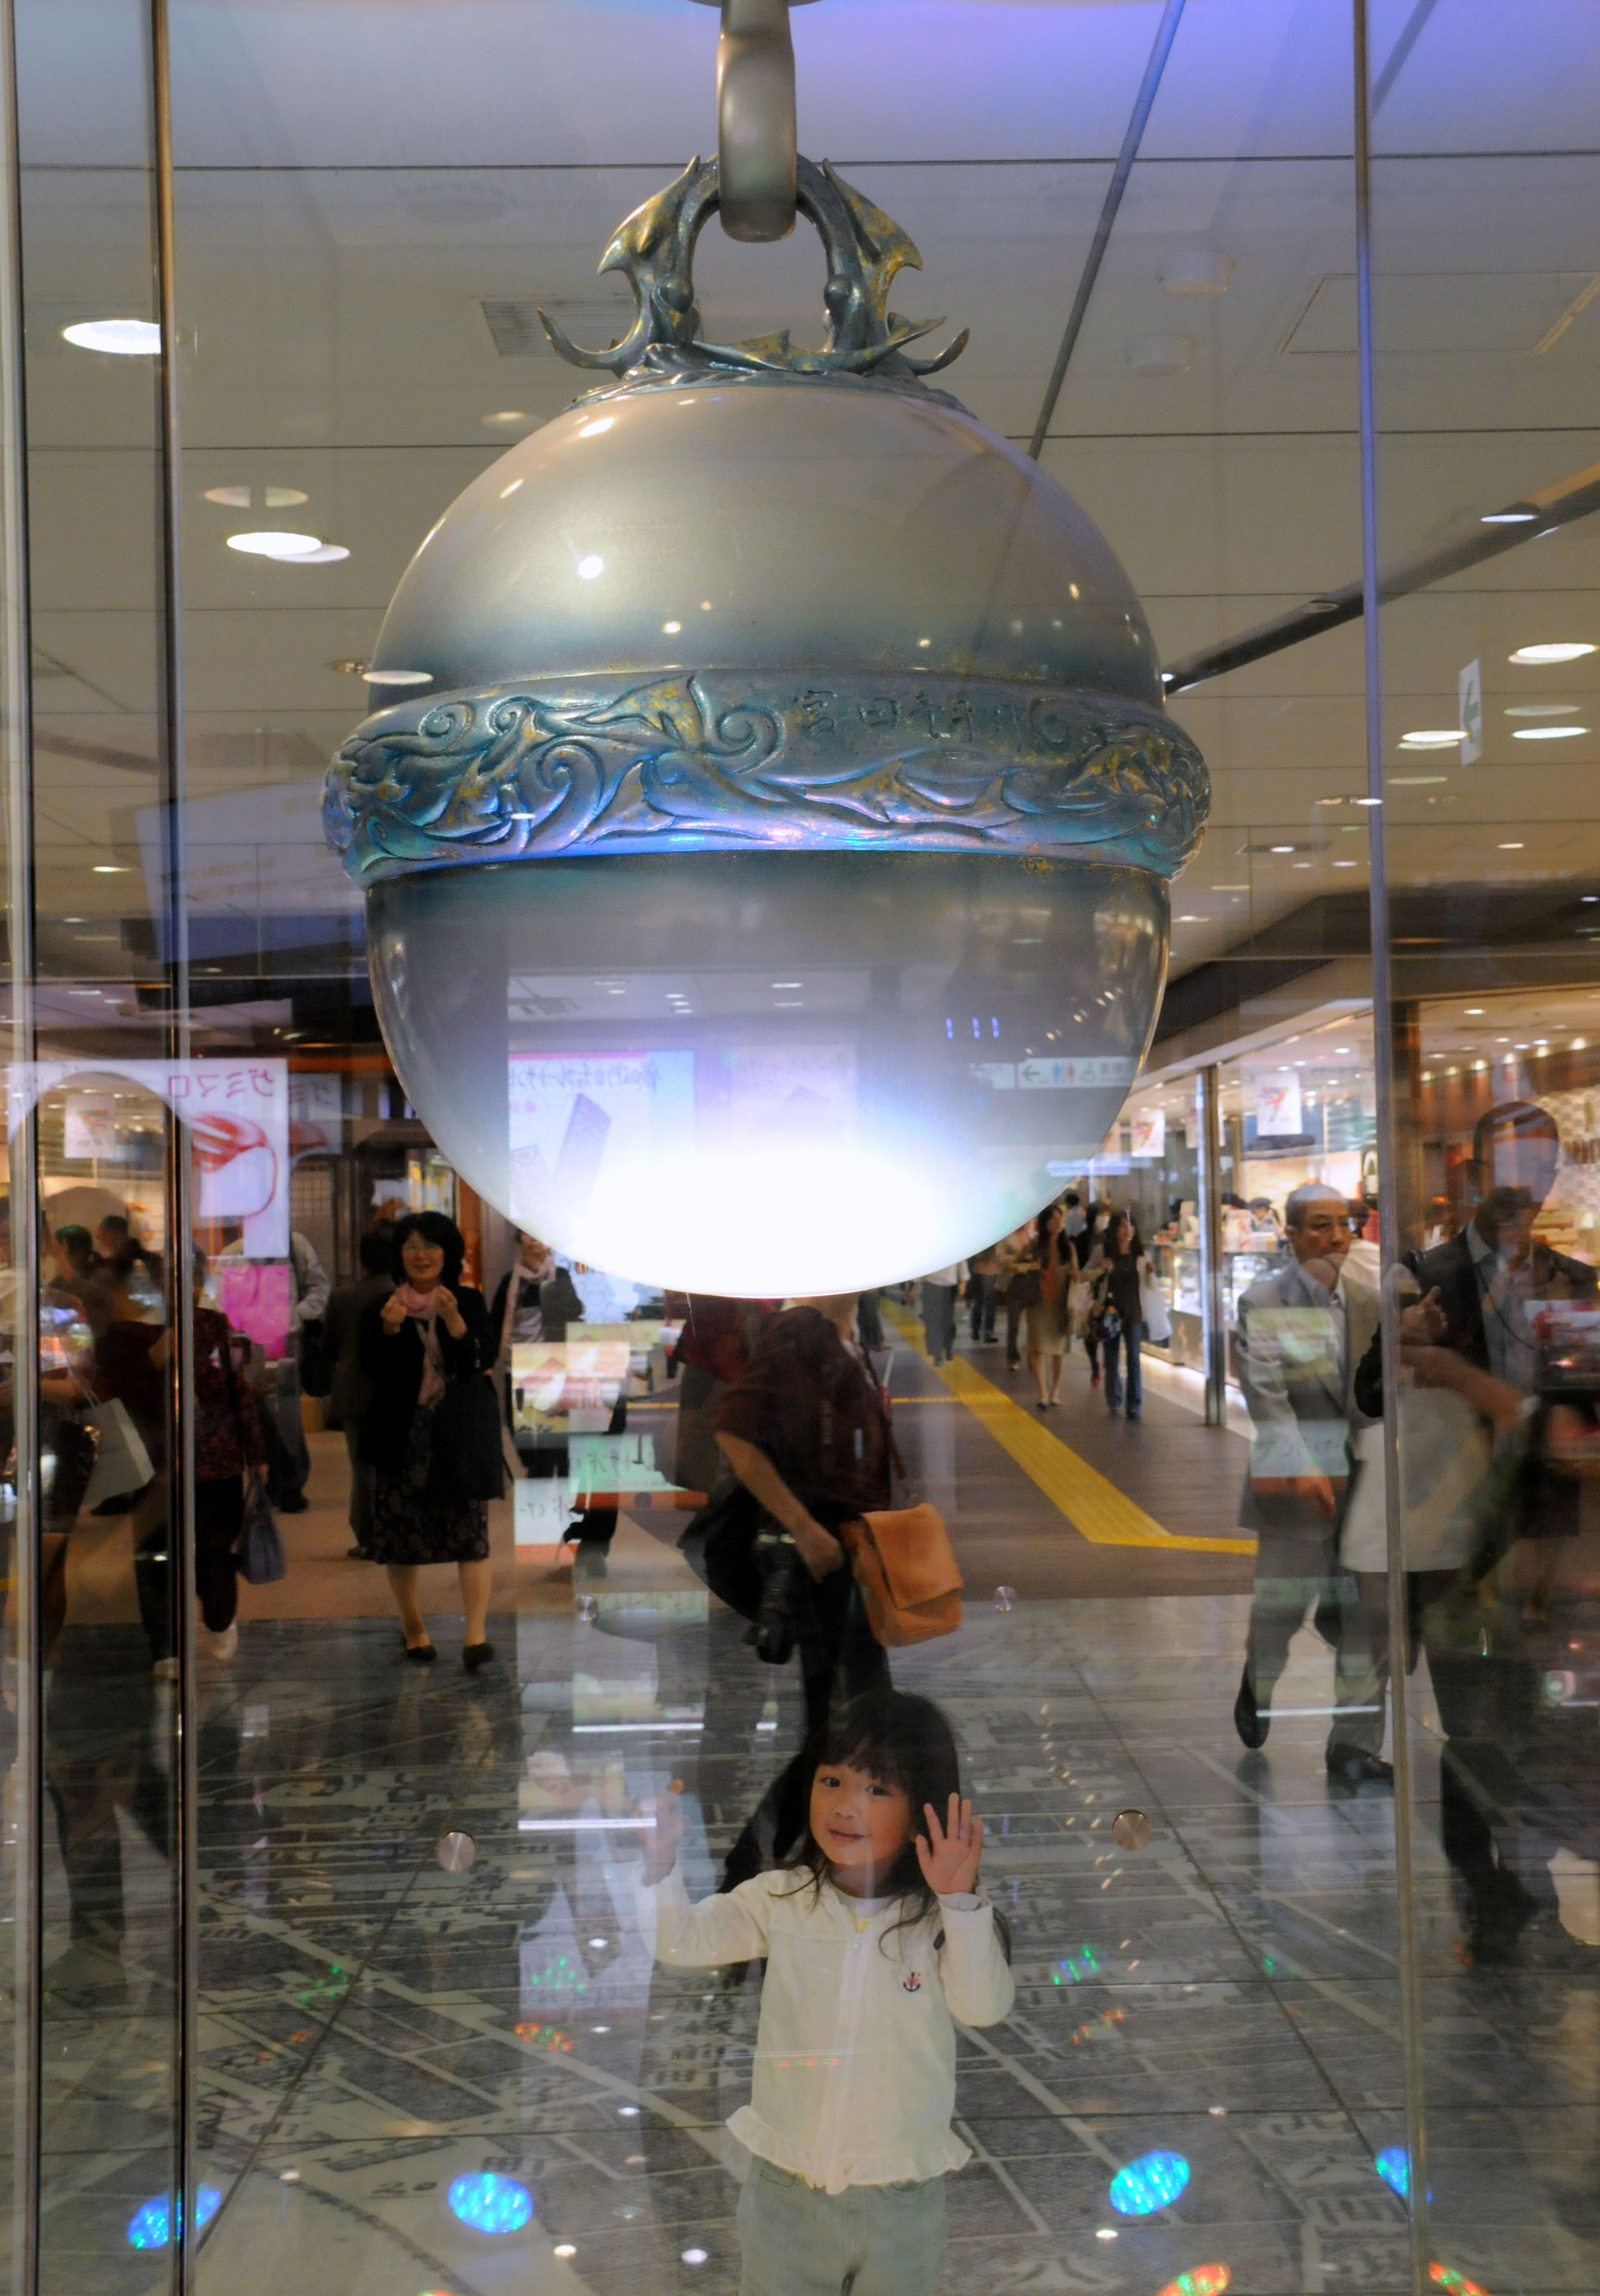 A child looks at a large, glass-covered silver bell that has become a popular meeting spot in JR Tokyo Station.